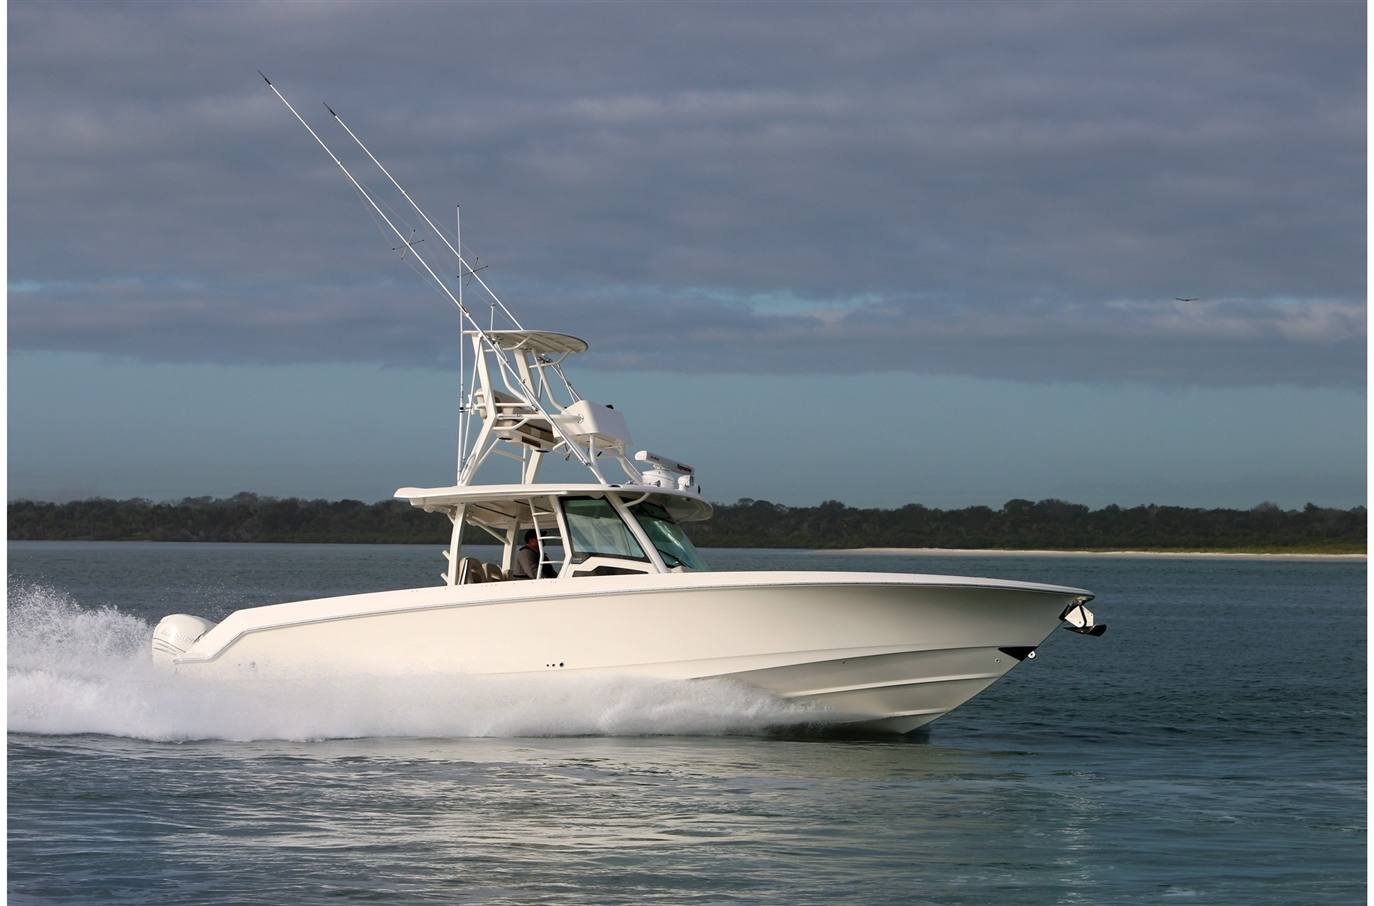 2019 Boston Whaler 380 Outrage for sale in Brielle, NJ  McCarthys